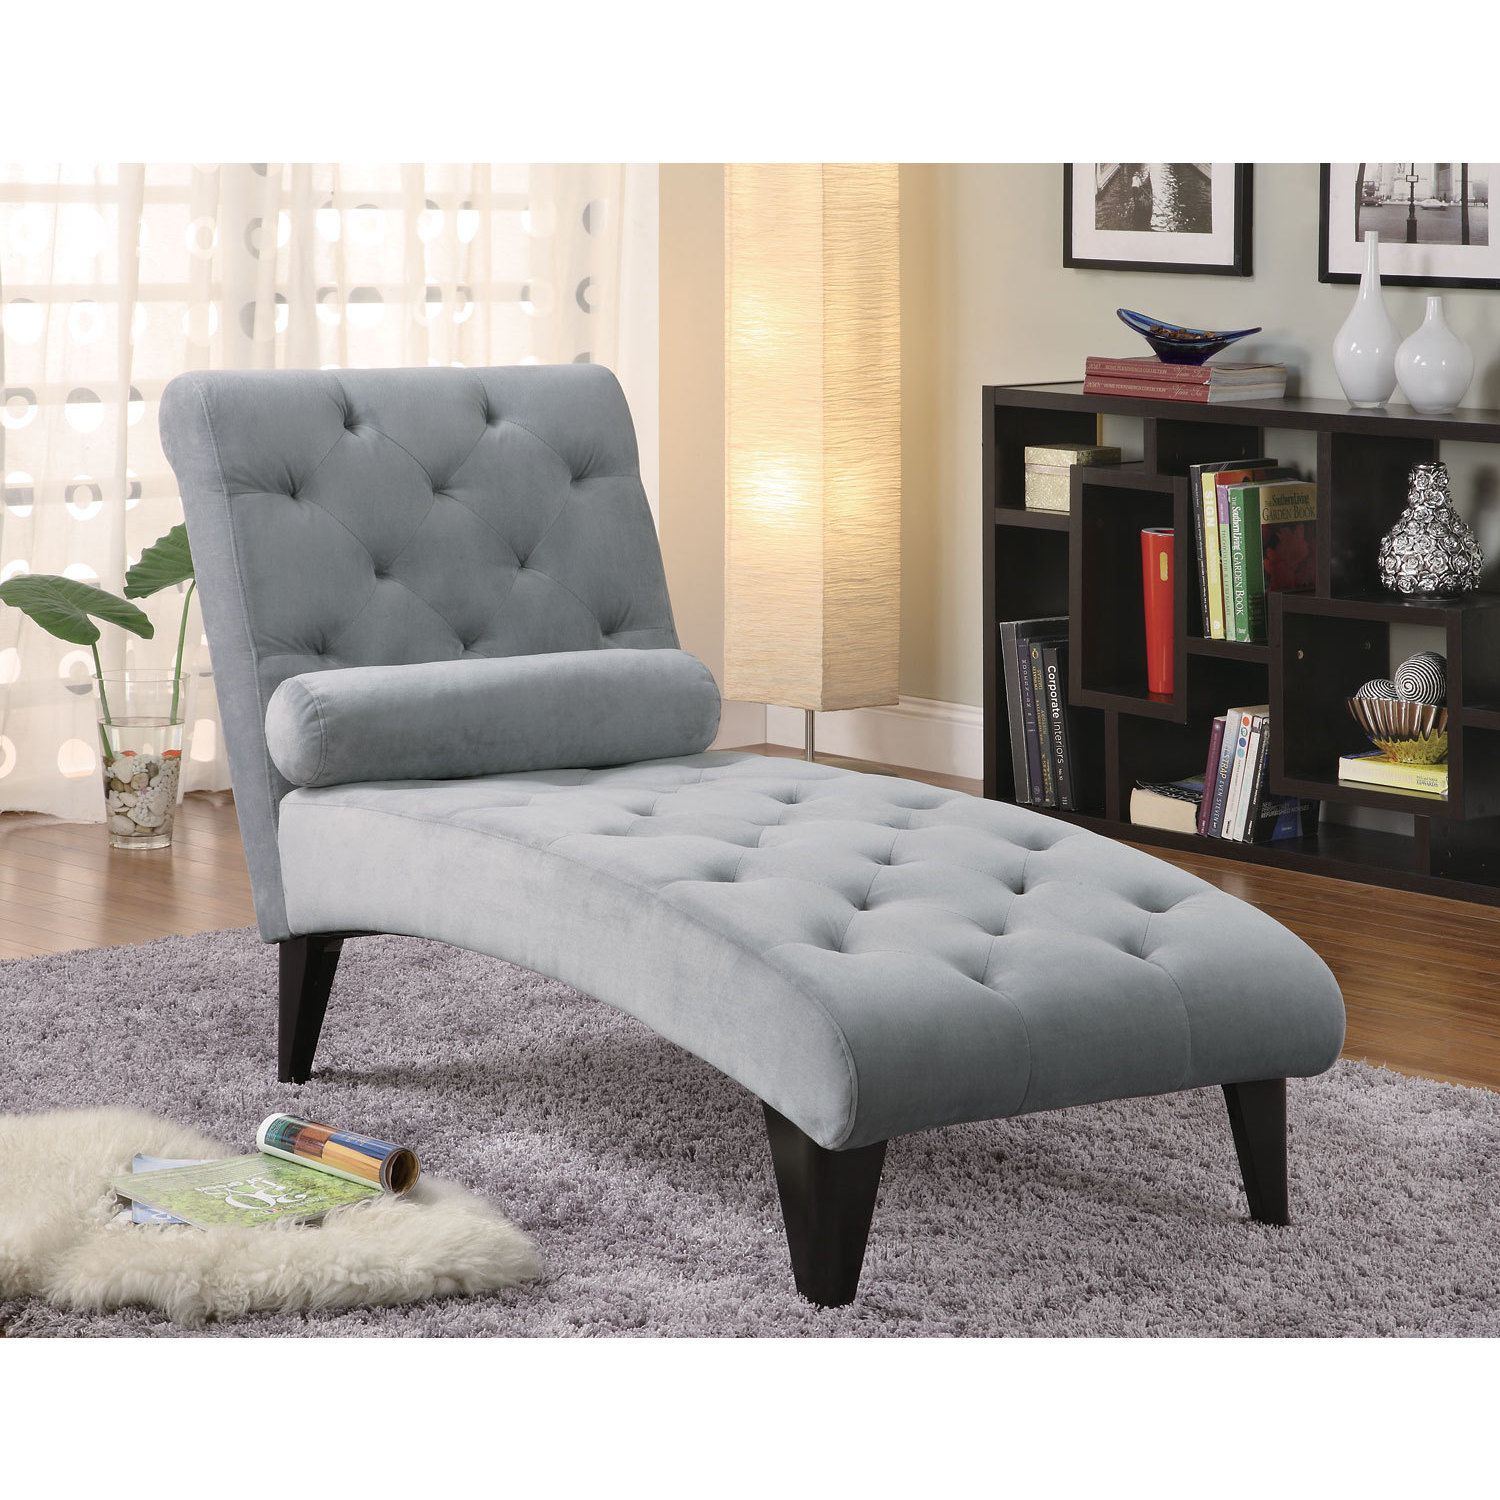 Velour Grey Chaise Lounge Chair 27 50 X 64 X 51 Tufted